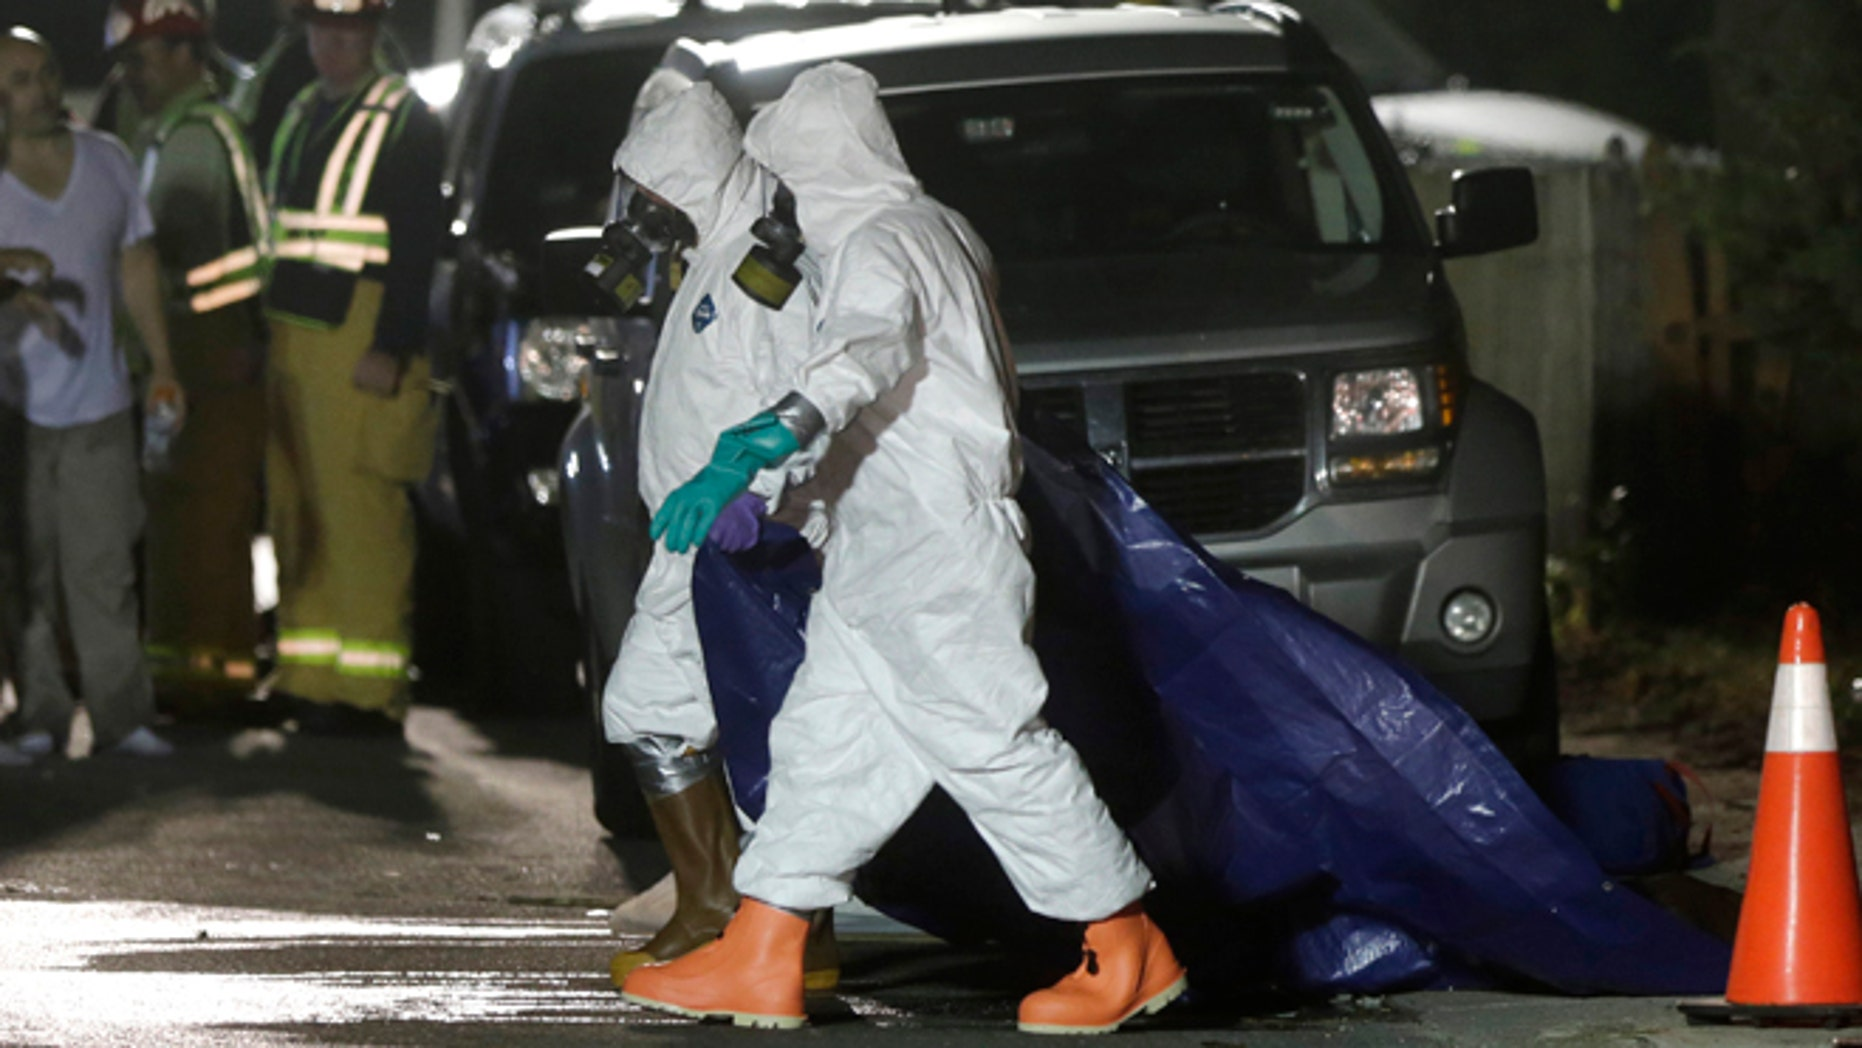 Sept. 11, 2014: Investigators in protective clothing drag a tarp across the street in front of a house where a Massachusetts prosecutor said the bodies of three infants were found in Blackstone, Mass. Worcester County District Attorney Joseph Early Jr. said Thursday authorities don't know when or how the babies died.